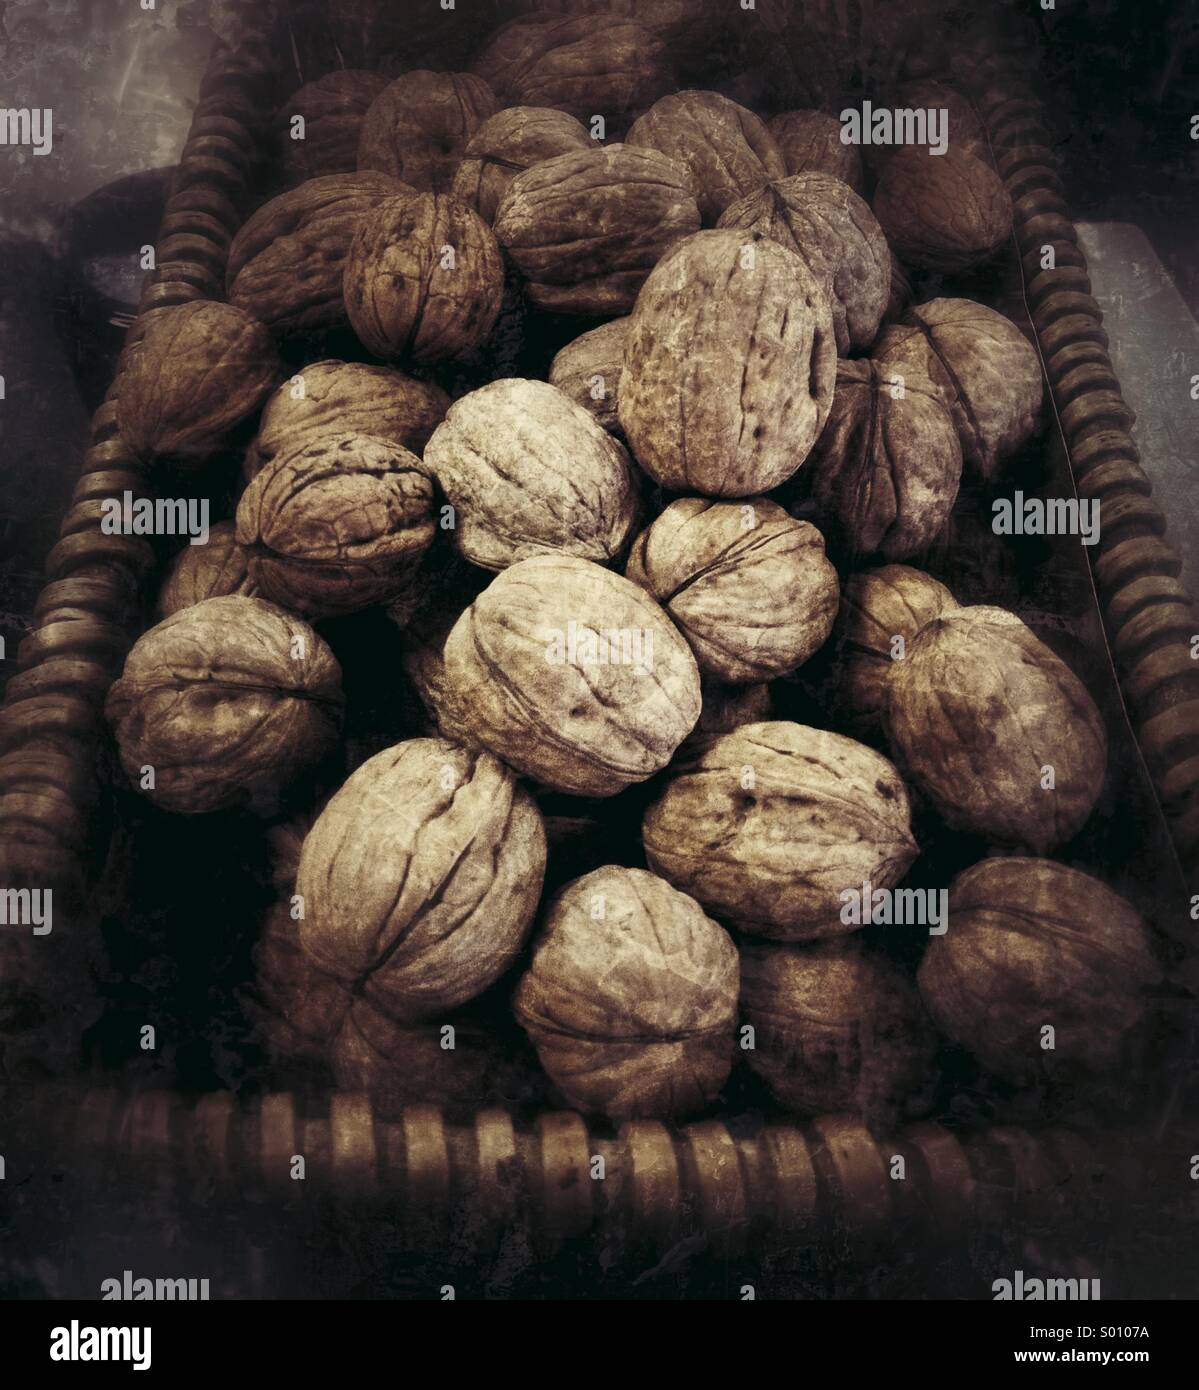 Basket of walnuts - Stock Image